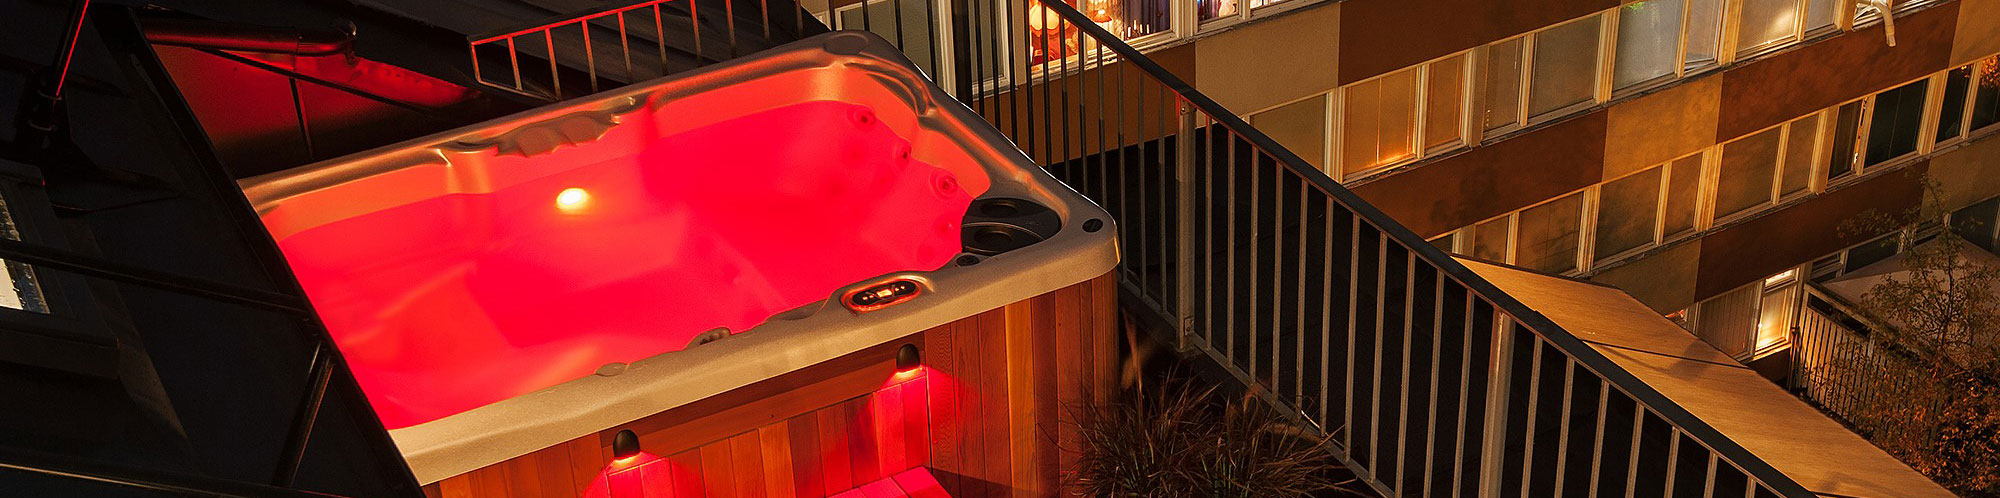 Hydropool Serenity 4000 Balcony Hot Tub